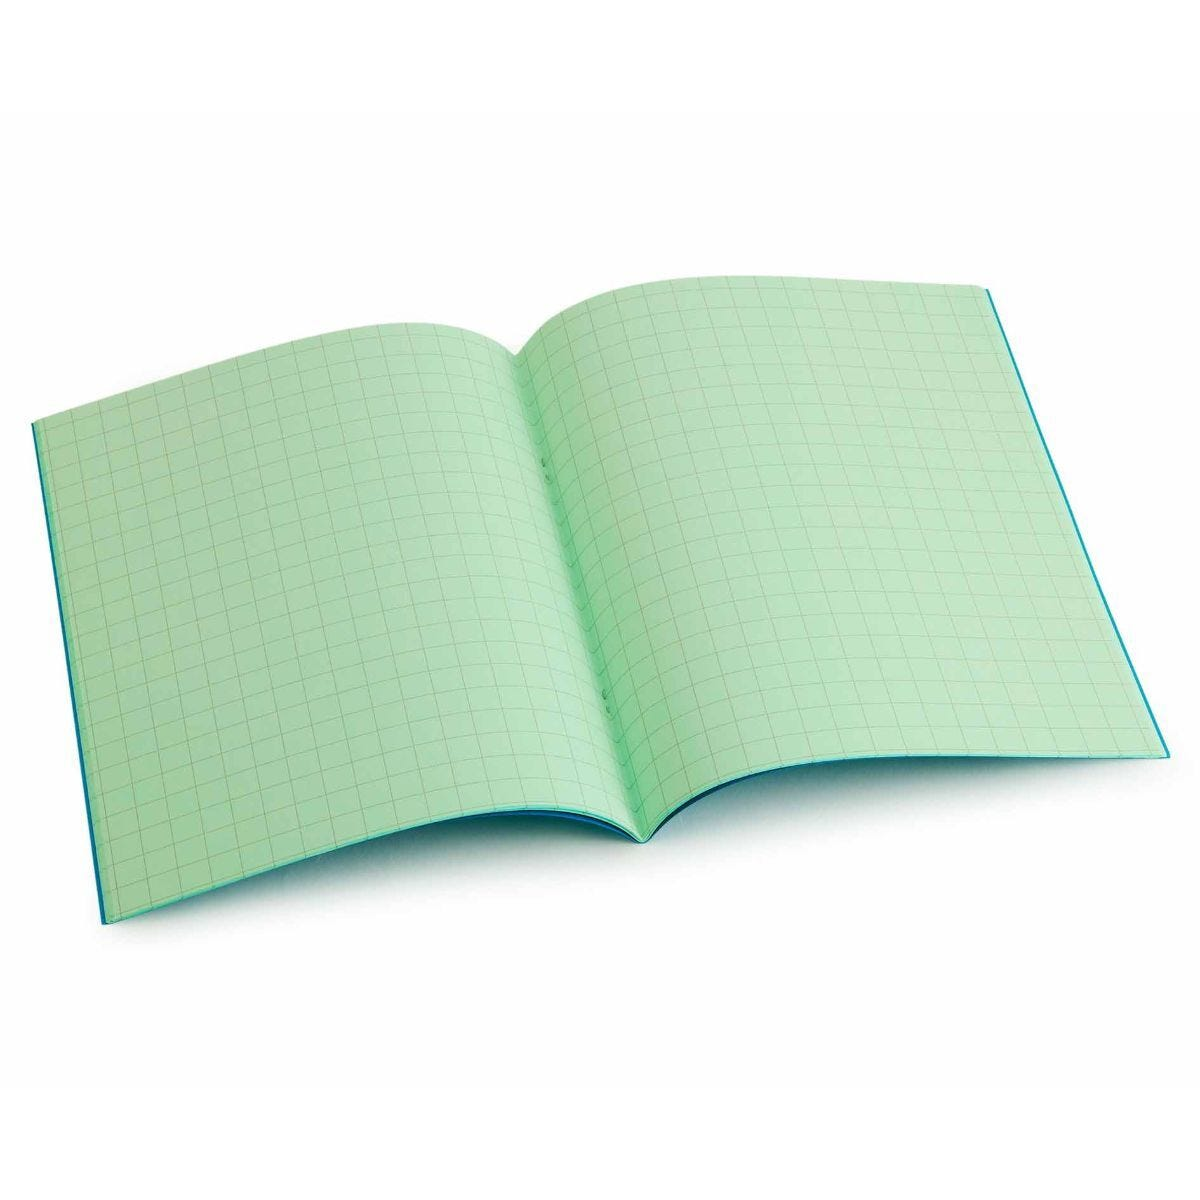 Tinted Exercise Book Standard 7x9 Squared 10mm Leaf Green